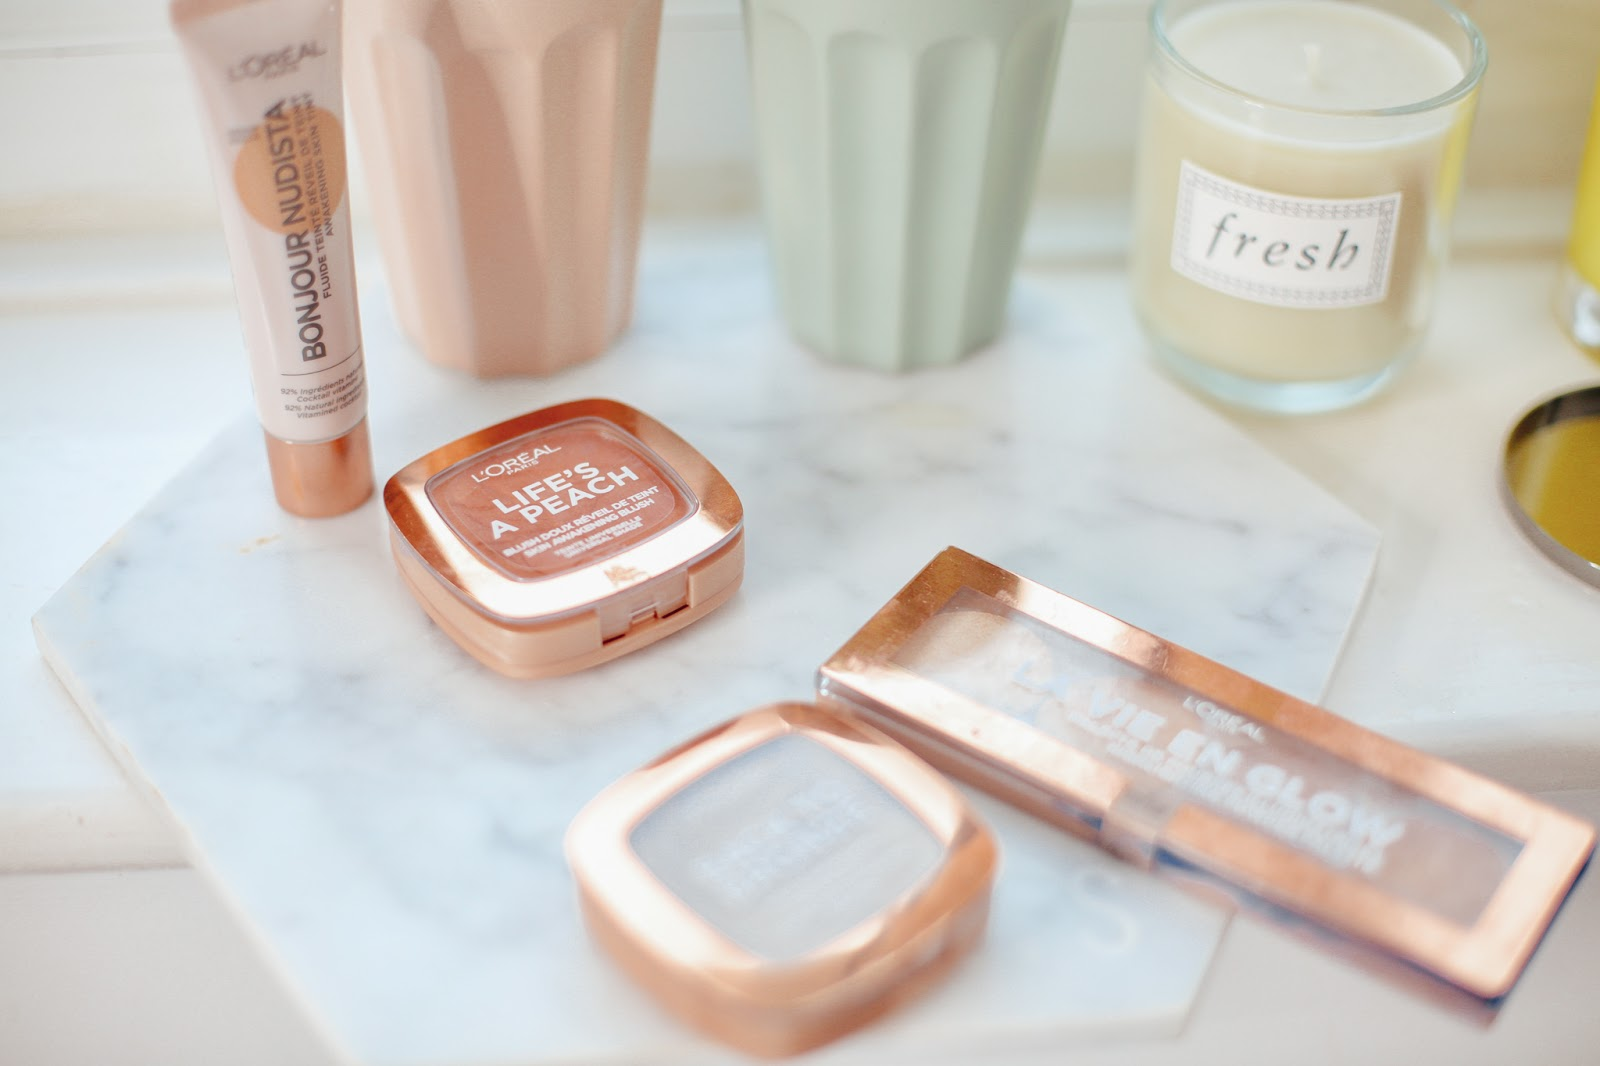 L'Oreal Glow Range Review